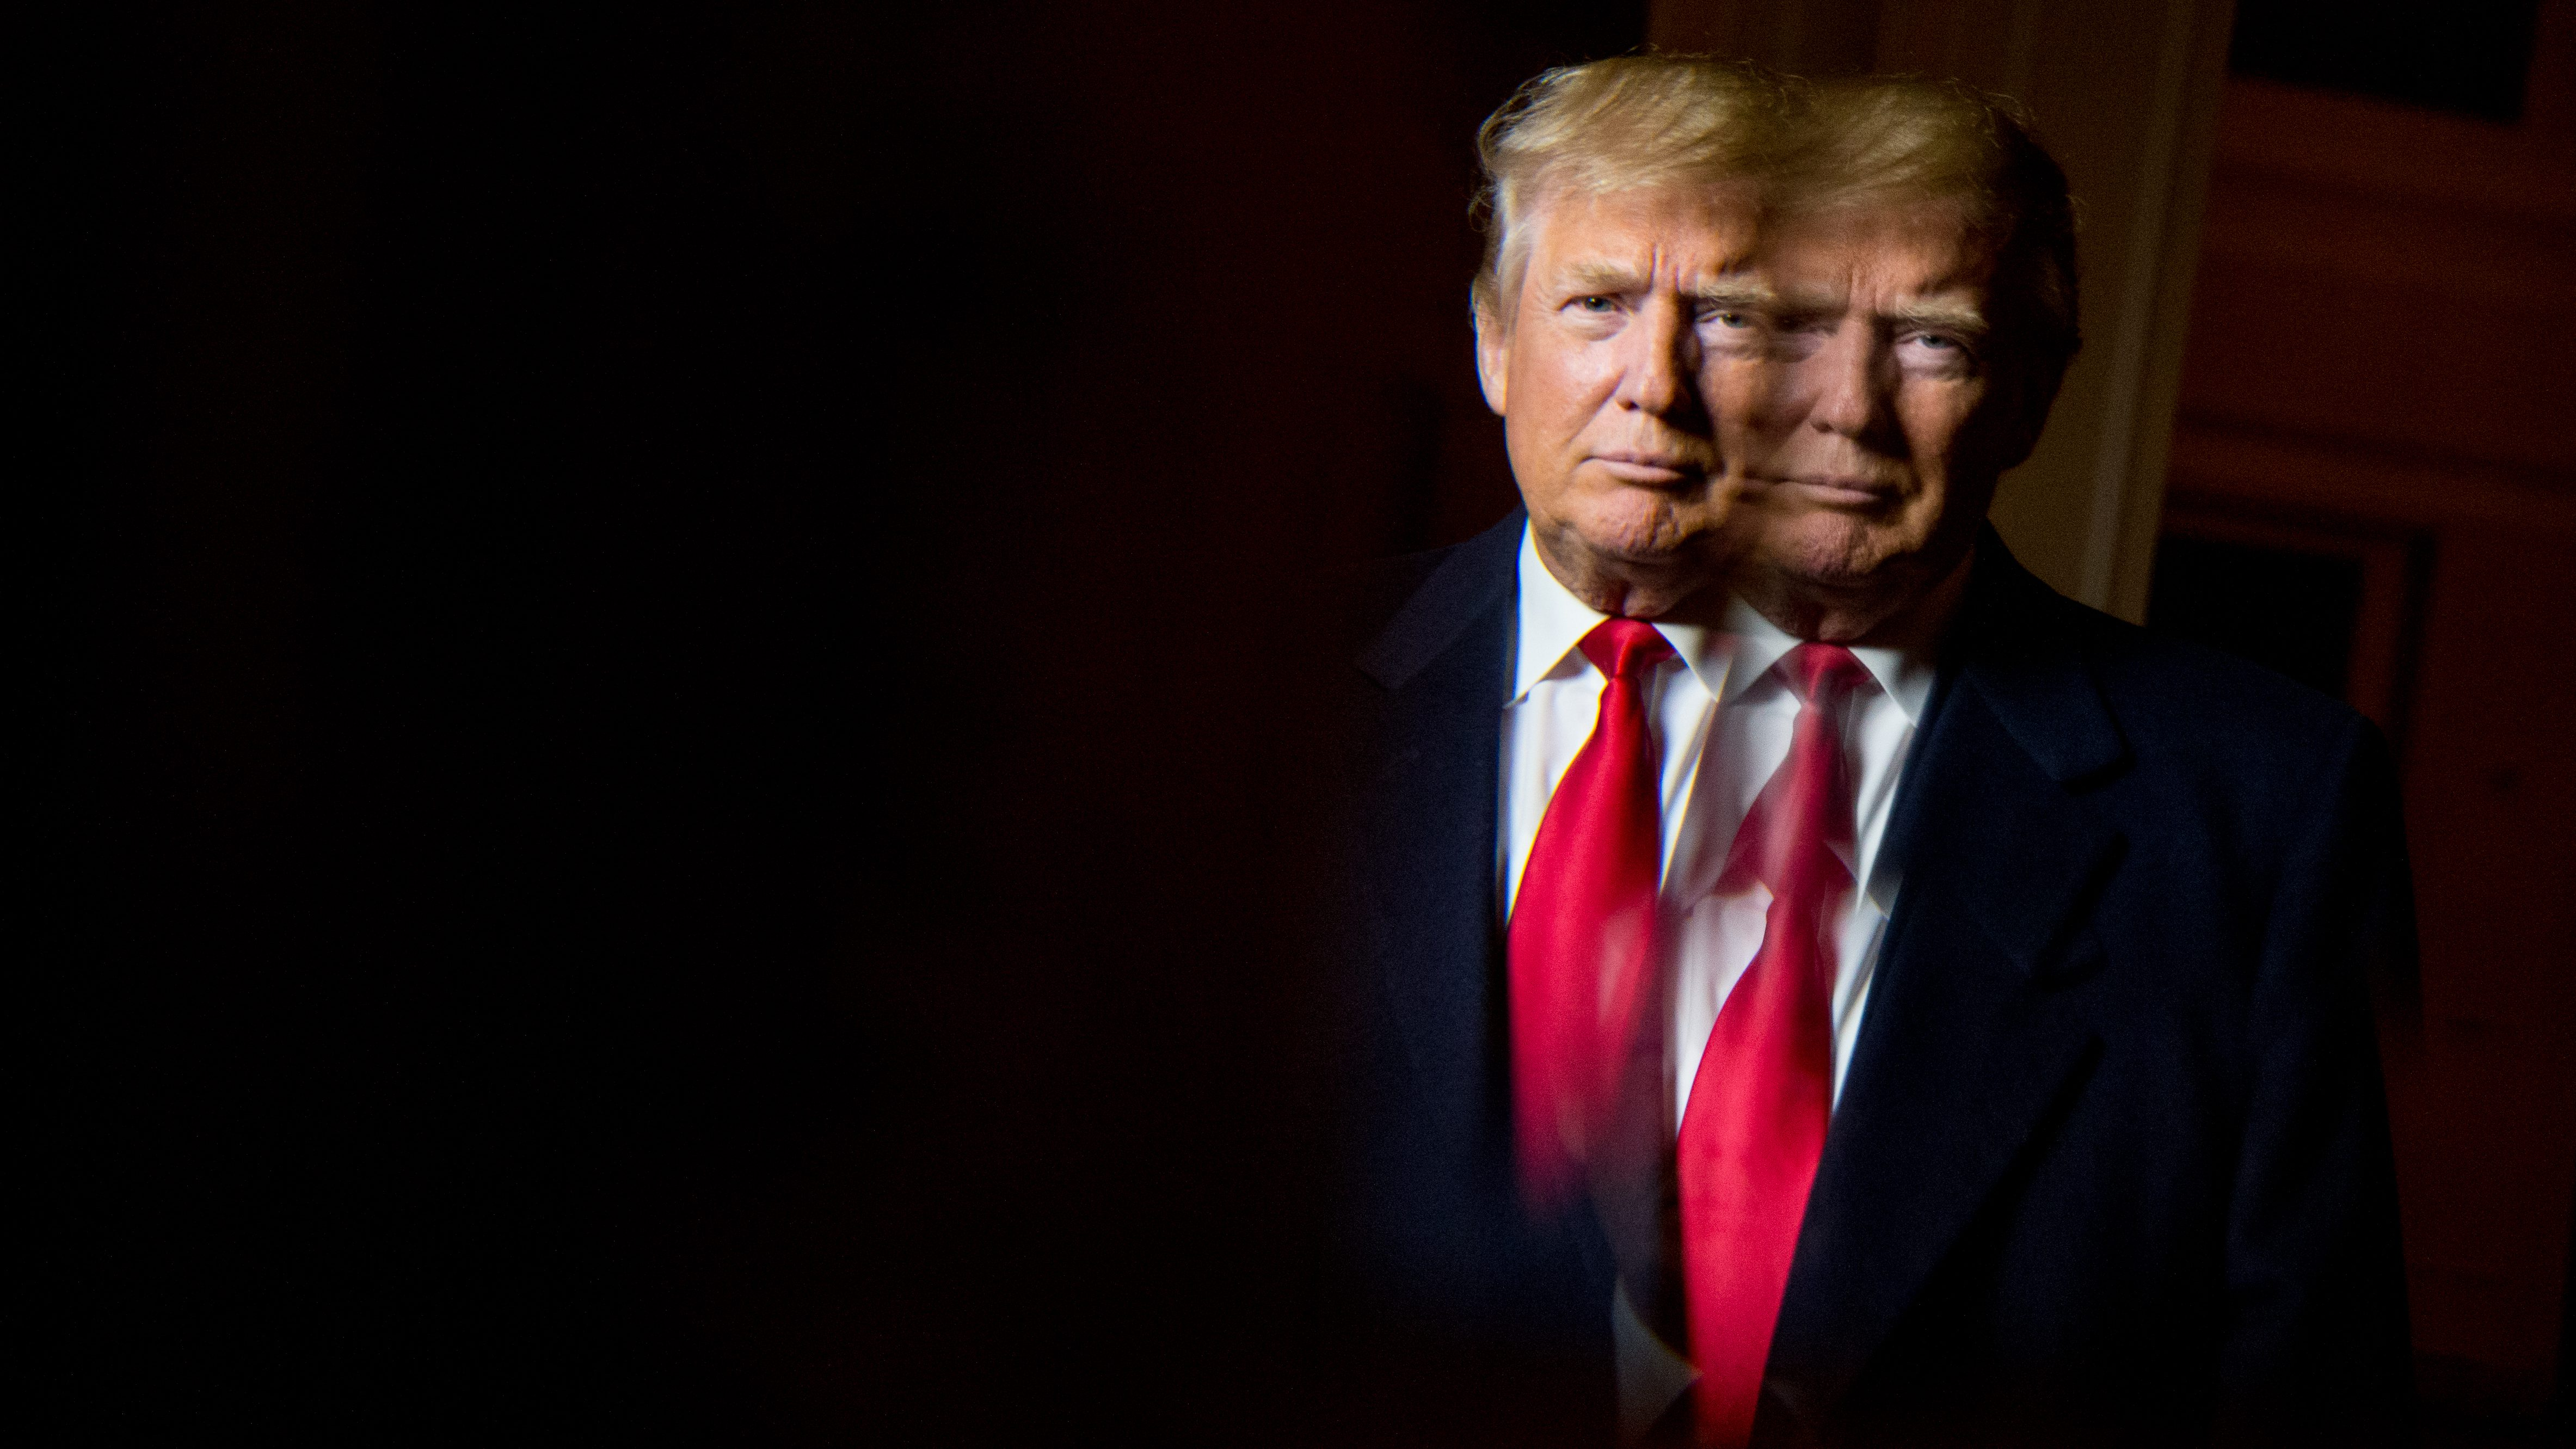 Republican presidential candidate Donald Trump, seen in reflection, poses for a portrait following an interview with the Associated Press at the Trump National Golf Club in Sterling, Va., Wednesday, Dec. 2, 2015.